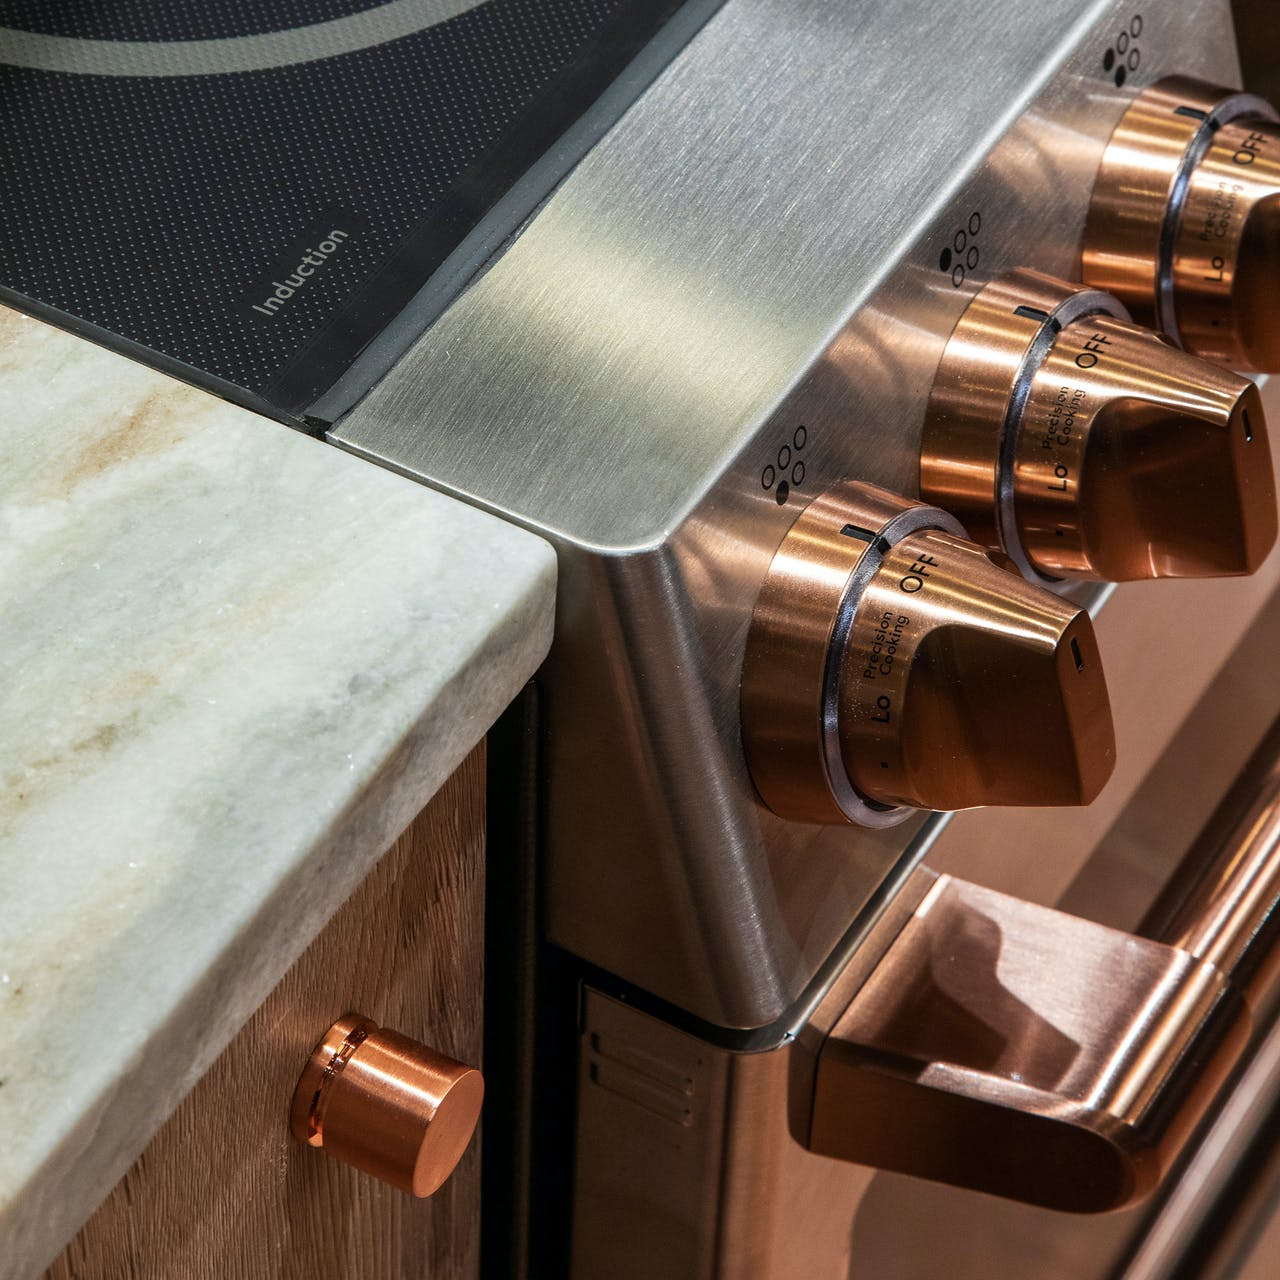 Cafe induction range in stainless with brushed copper hardware